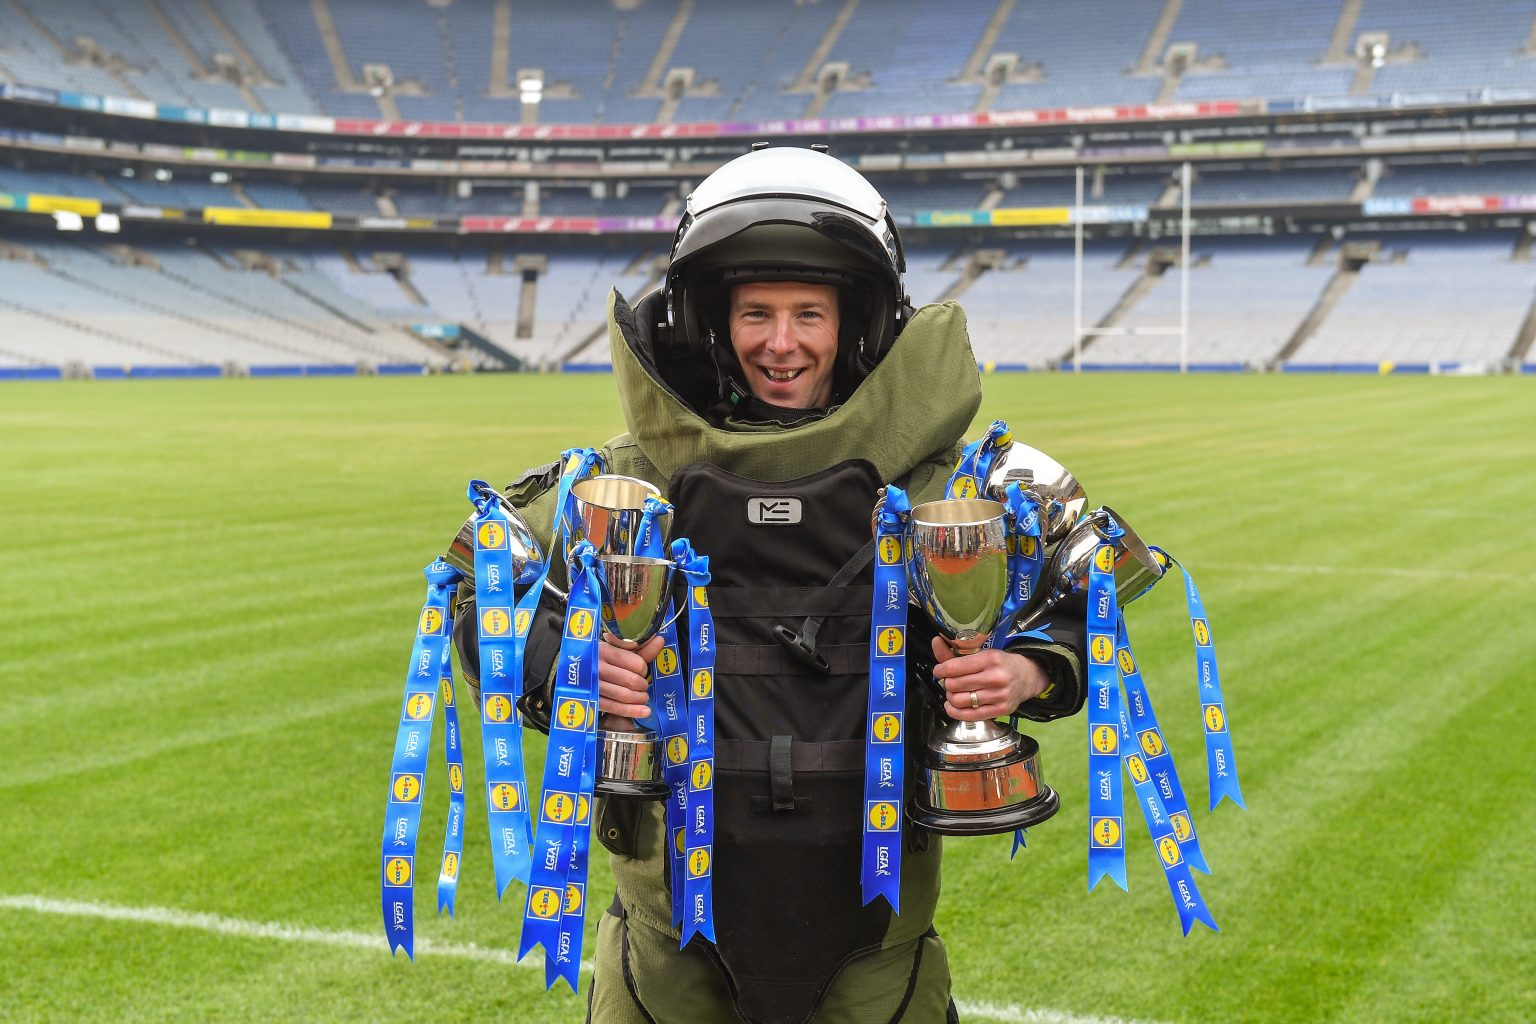 Lidl Post Primary Schools Finals Launched Today In Croke Park